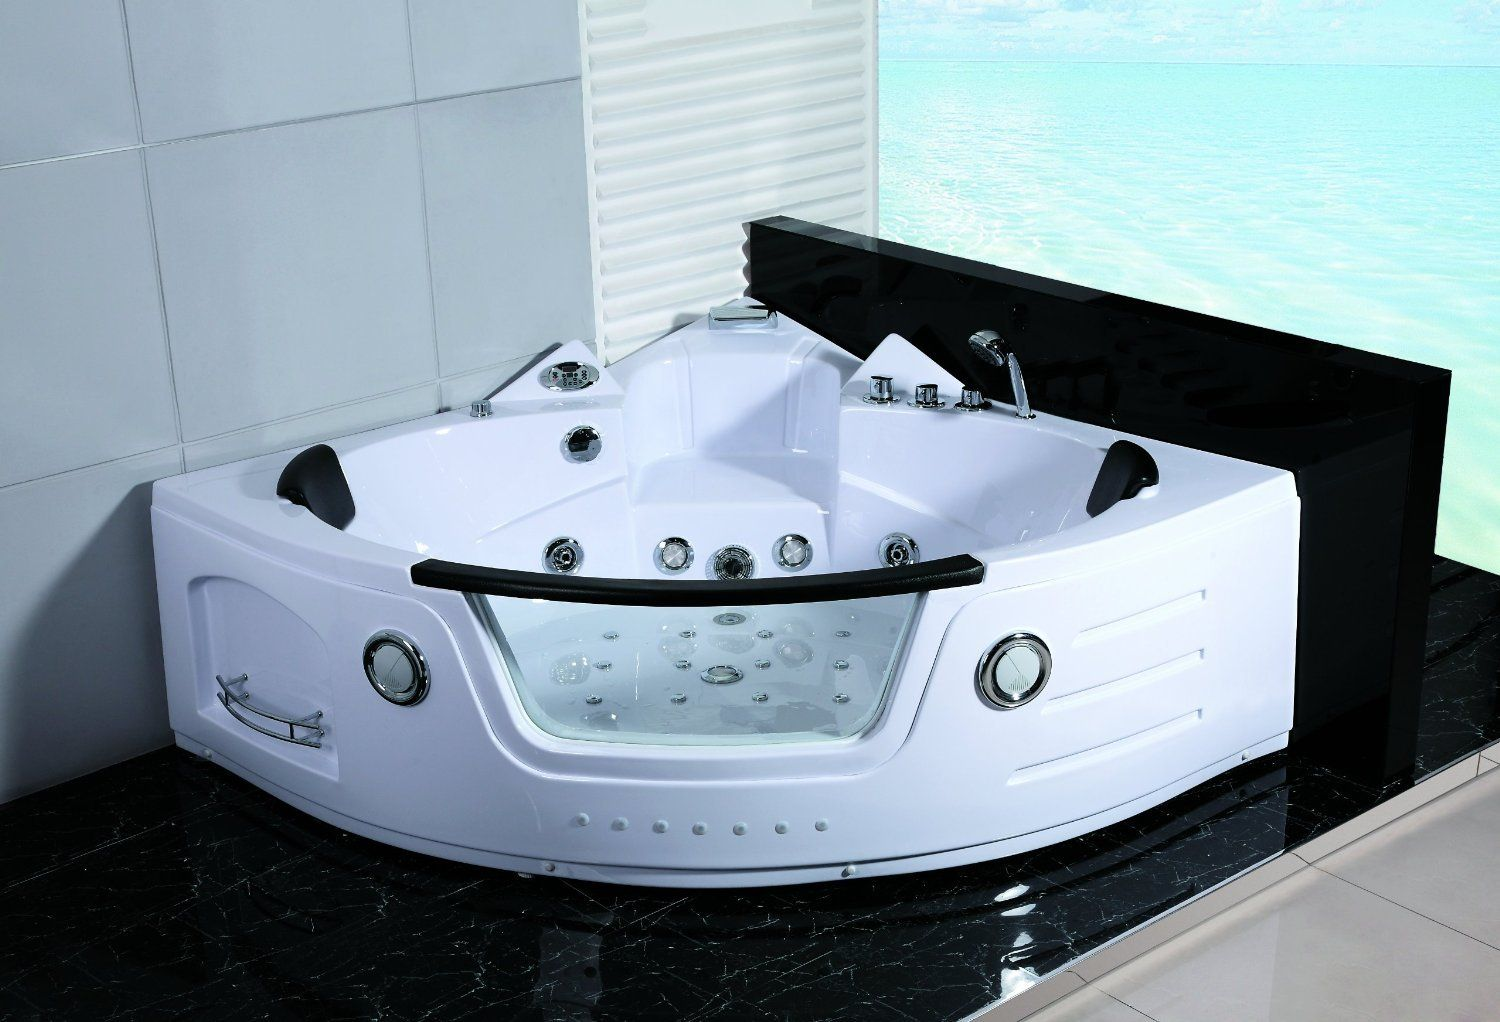 2 Person Hydrotherapy Computerized Massage Indoor Whirlpool Jetted Bathtub Hot Tub 050a White Jetted Bath Tubs Whirlpool Bathtub Jacuzzi Hot Tub